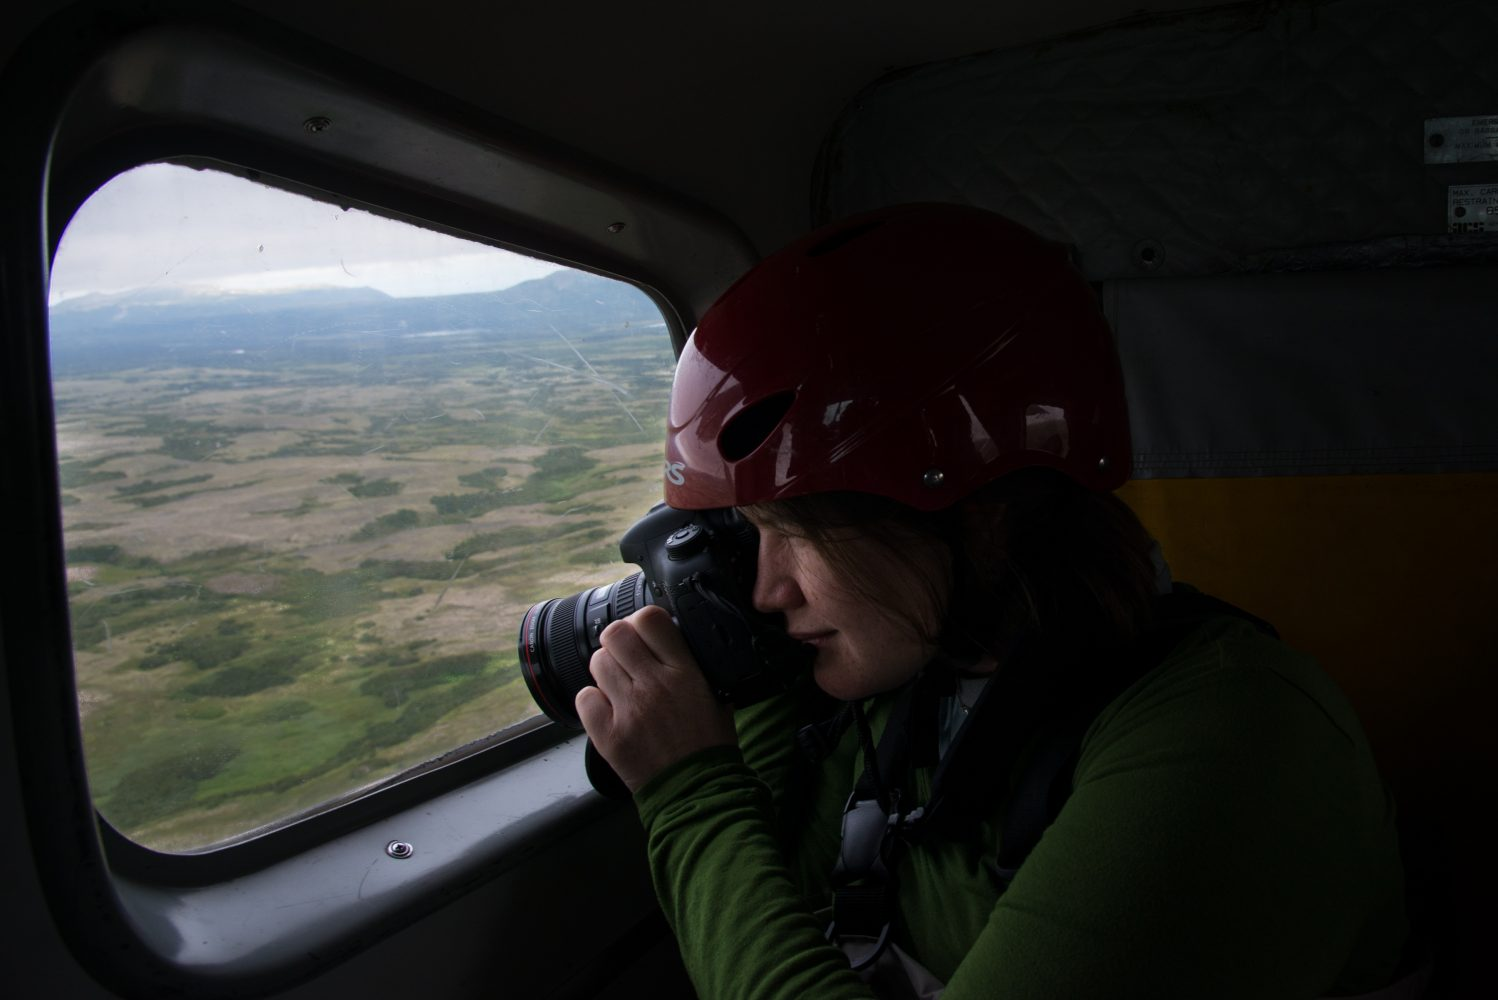 Photo by Jennifer Adler: Gabby Salazar shoots from the plane en route to an expedition through Alaska's Denali National Park.